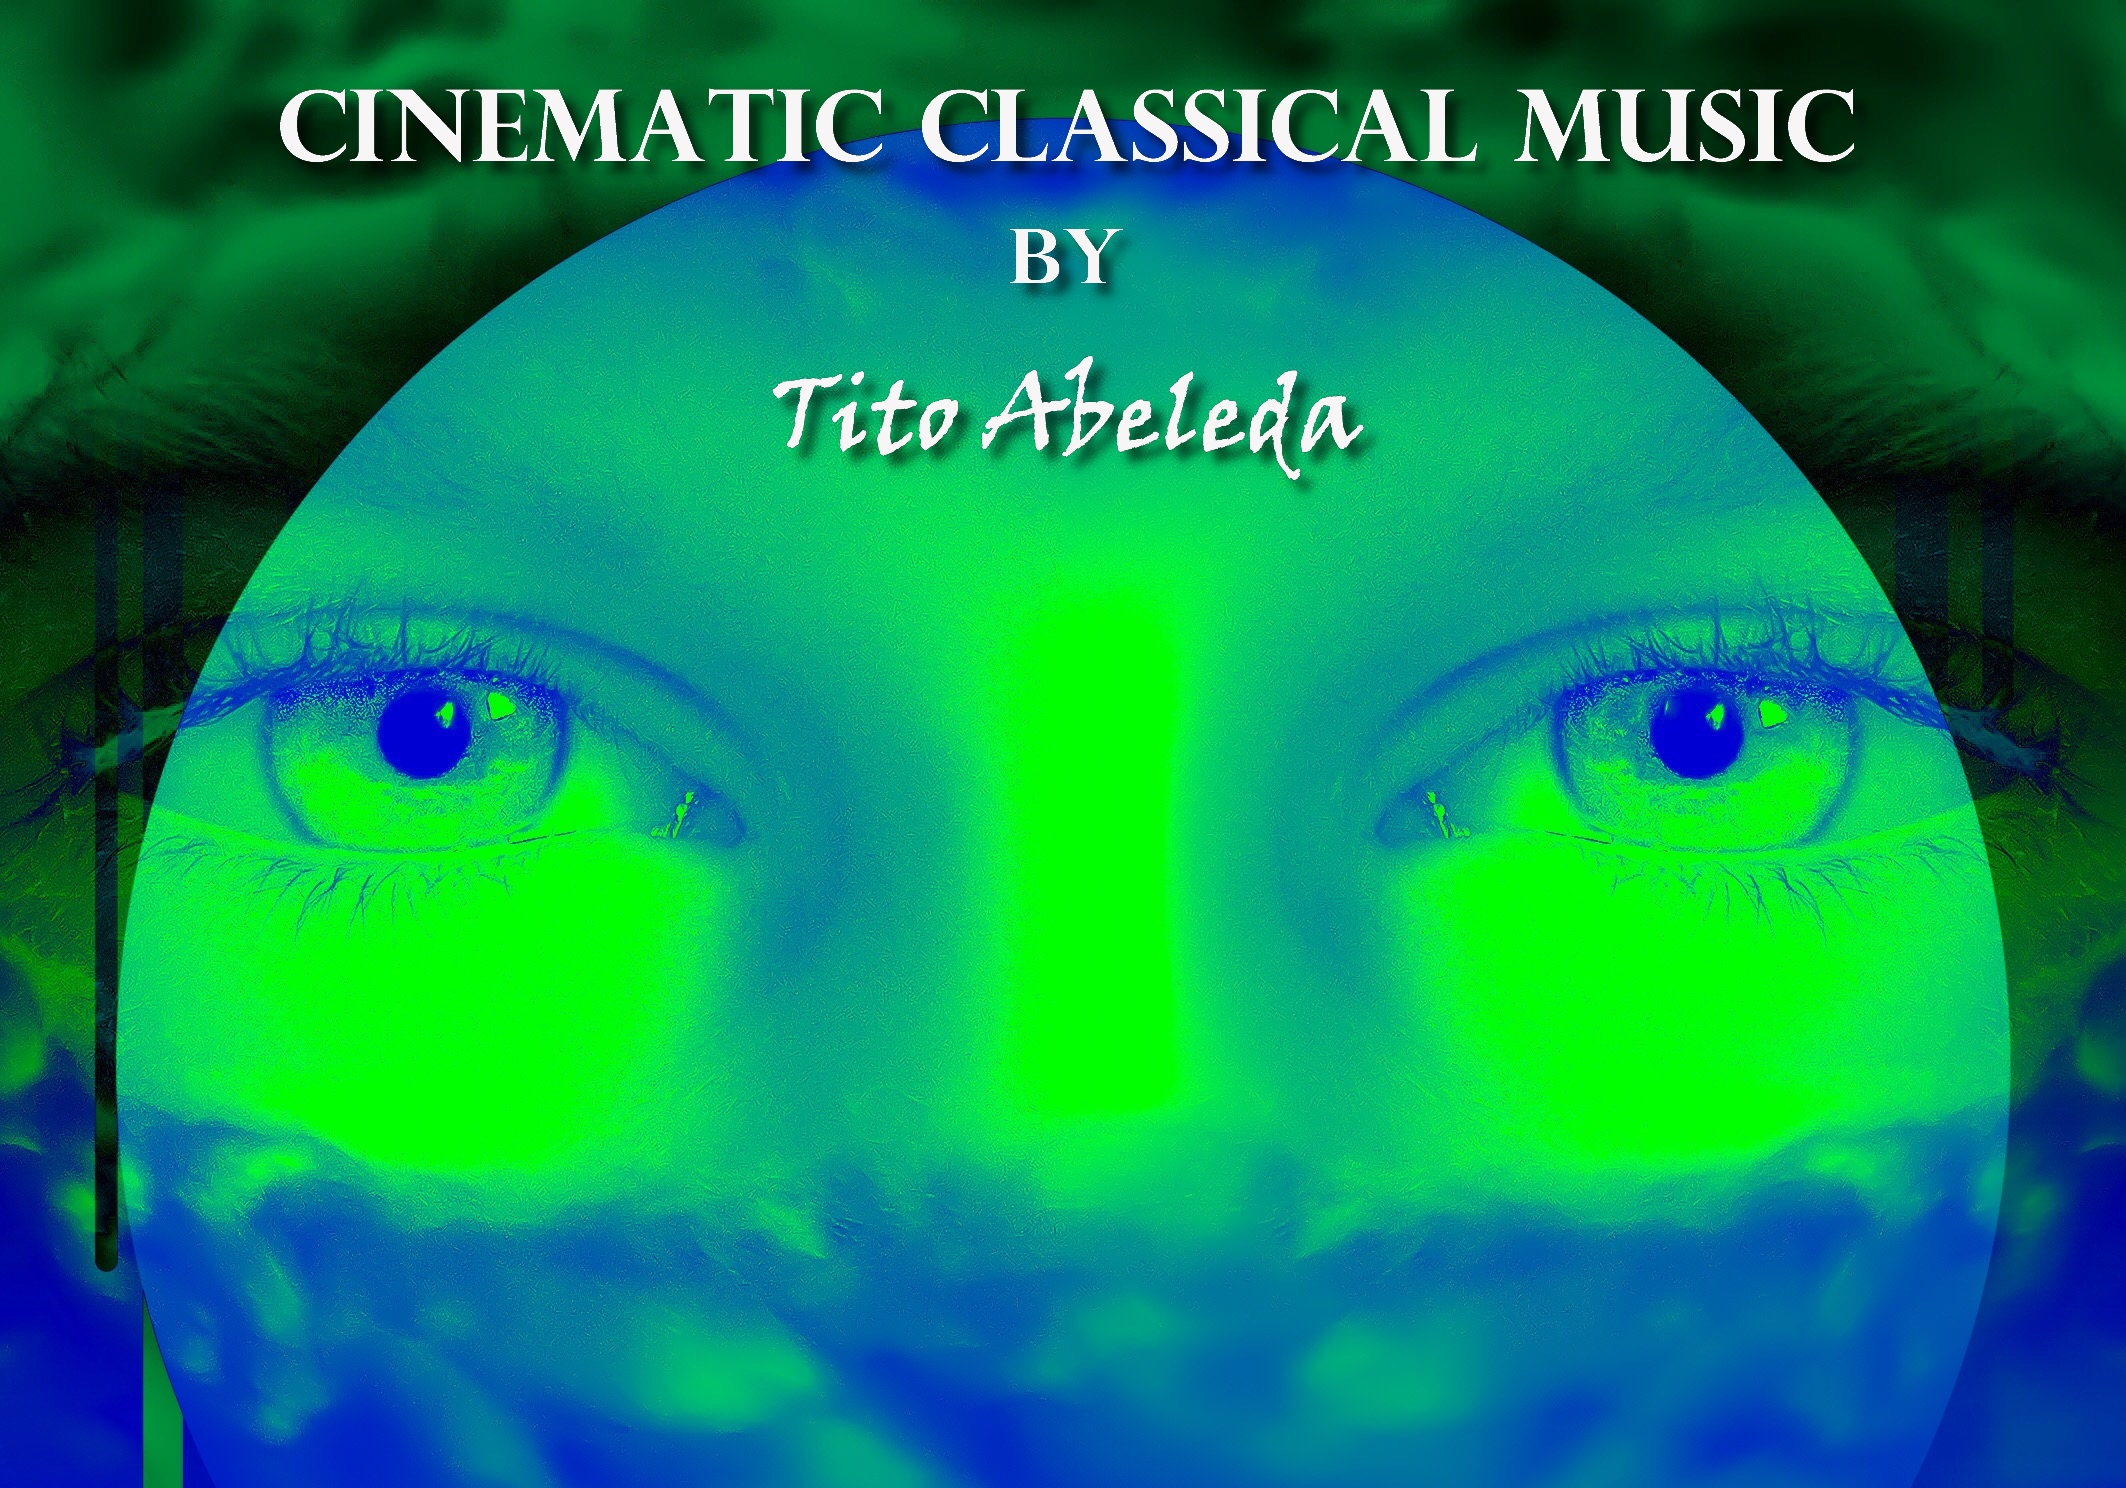 Cinematic Classical Music by Tito Abeleda on Guru